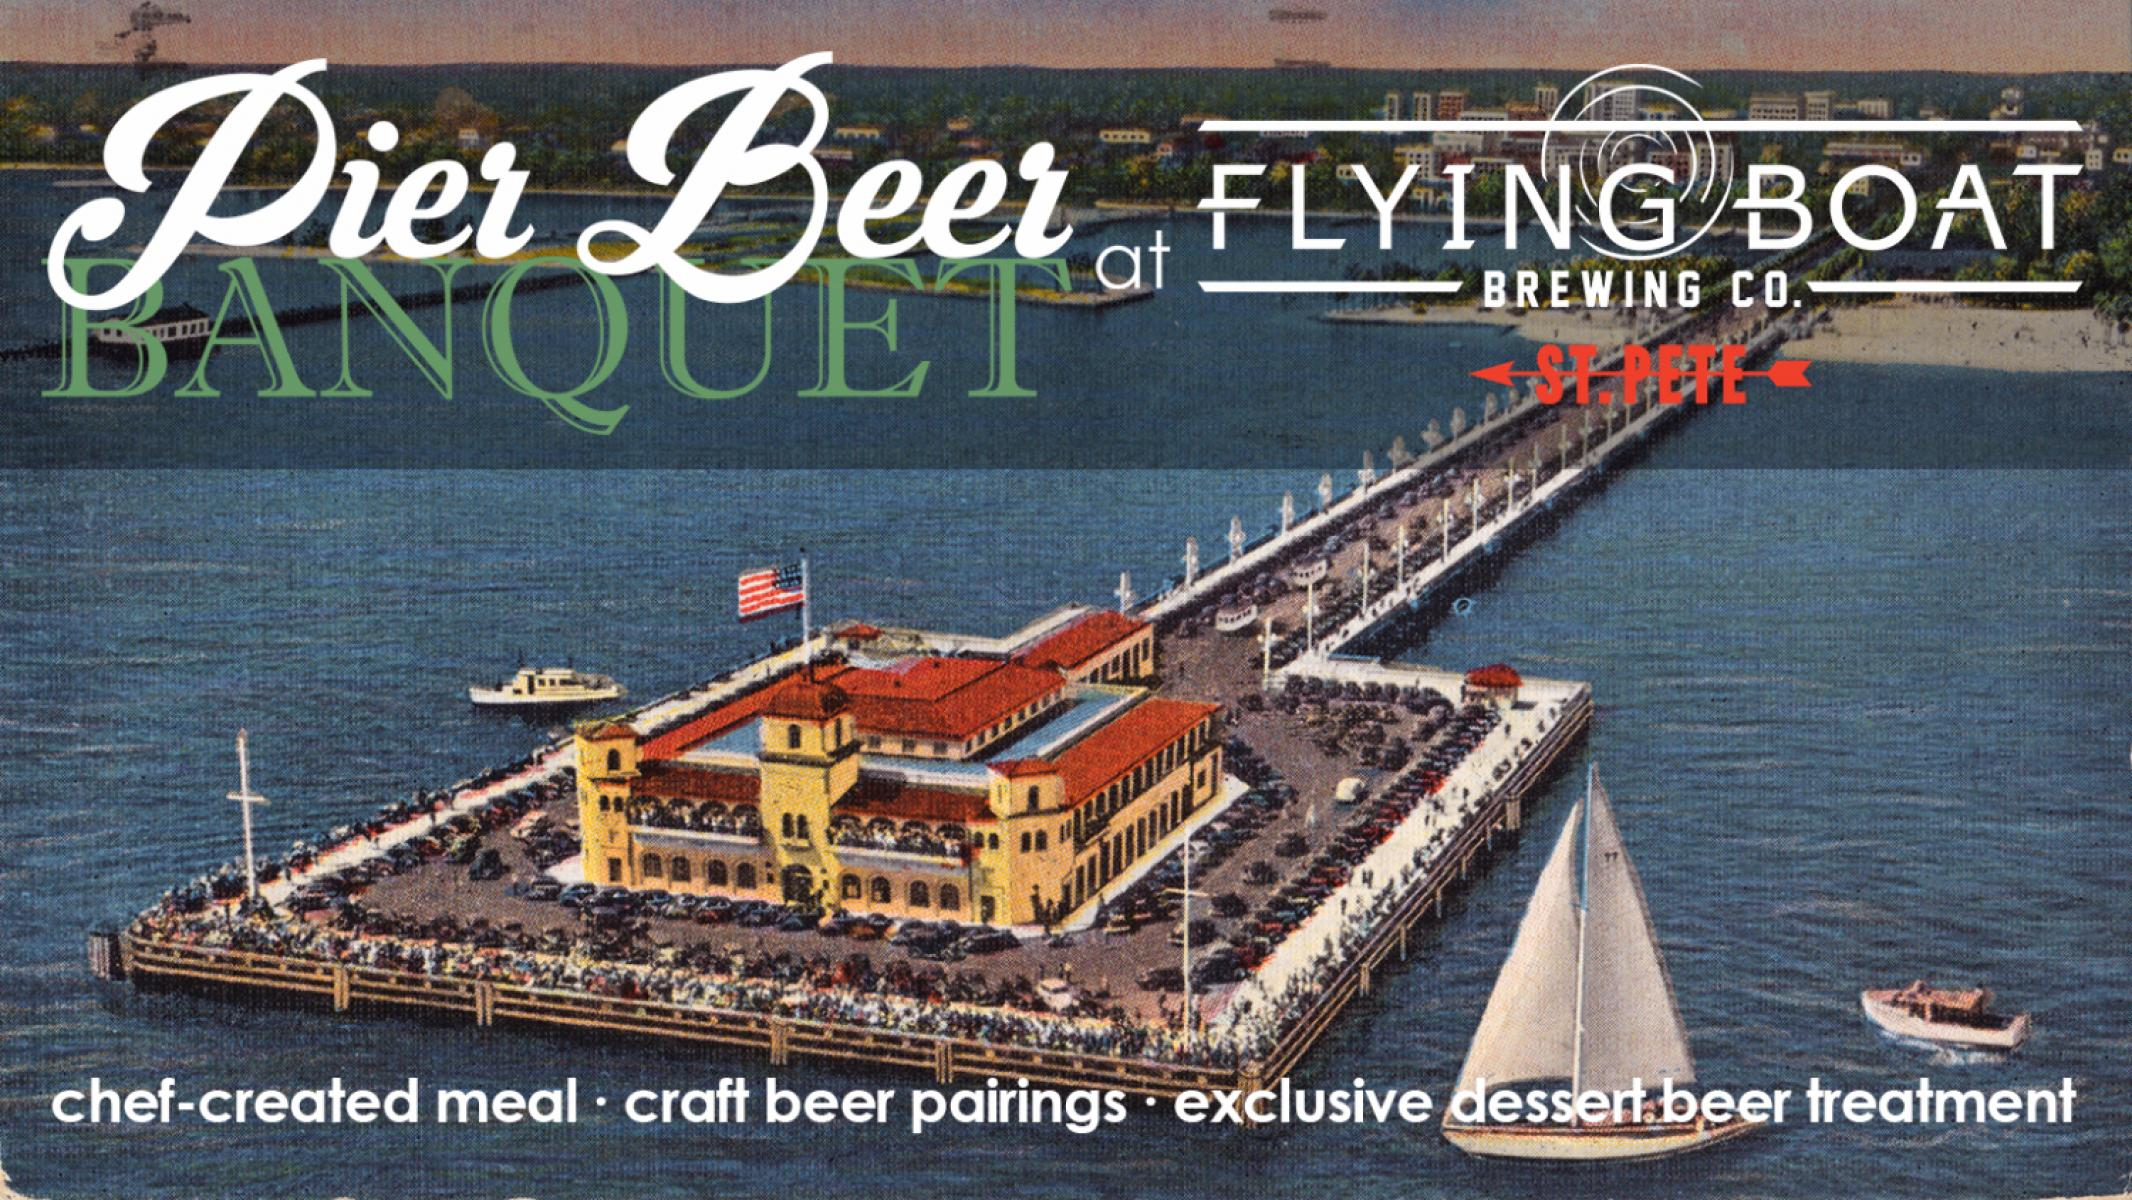 Pier Beer Banquet at Flying Boat Brewing Co.